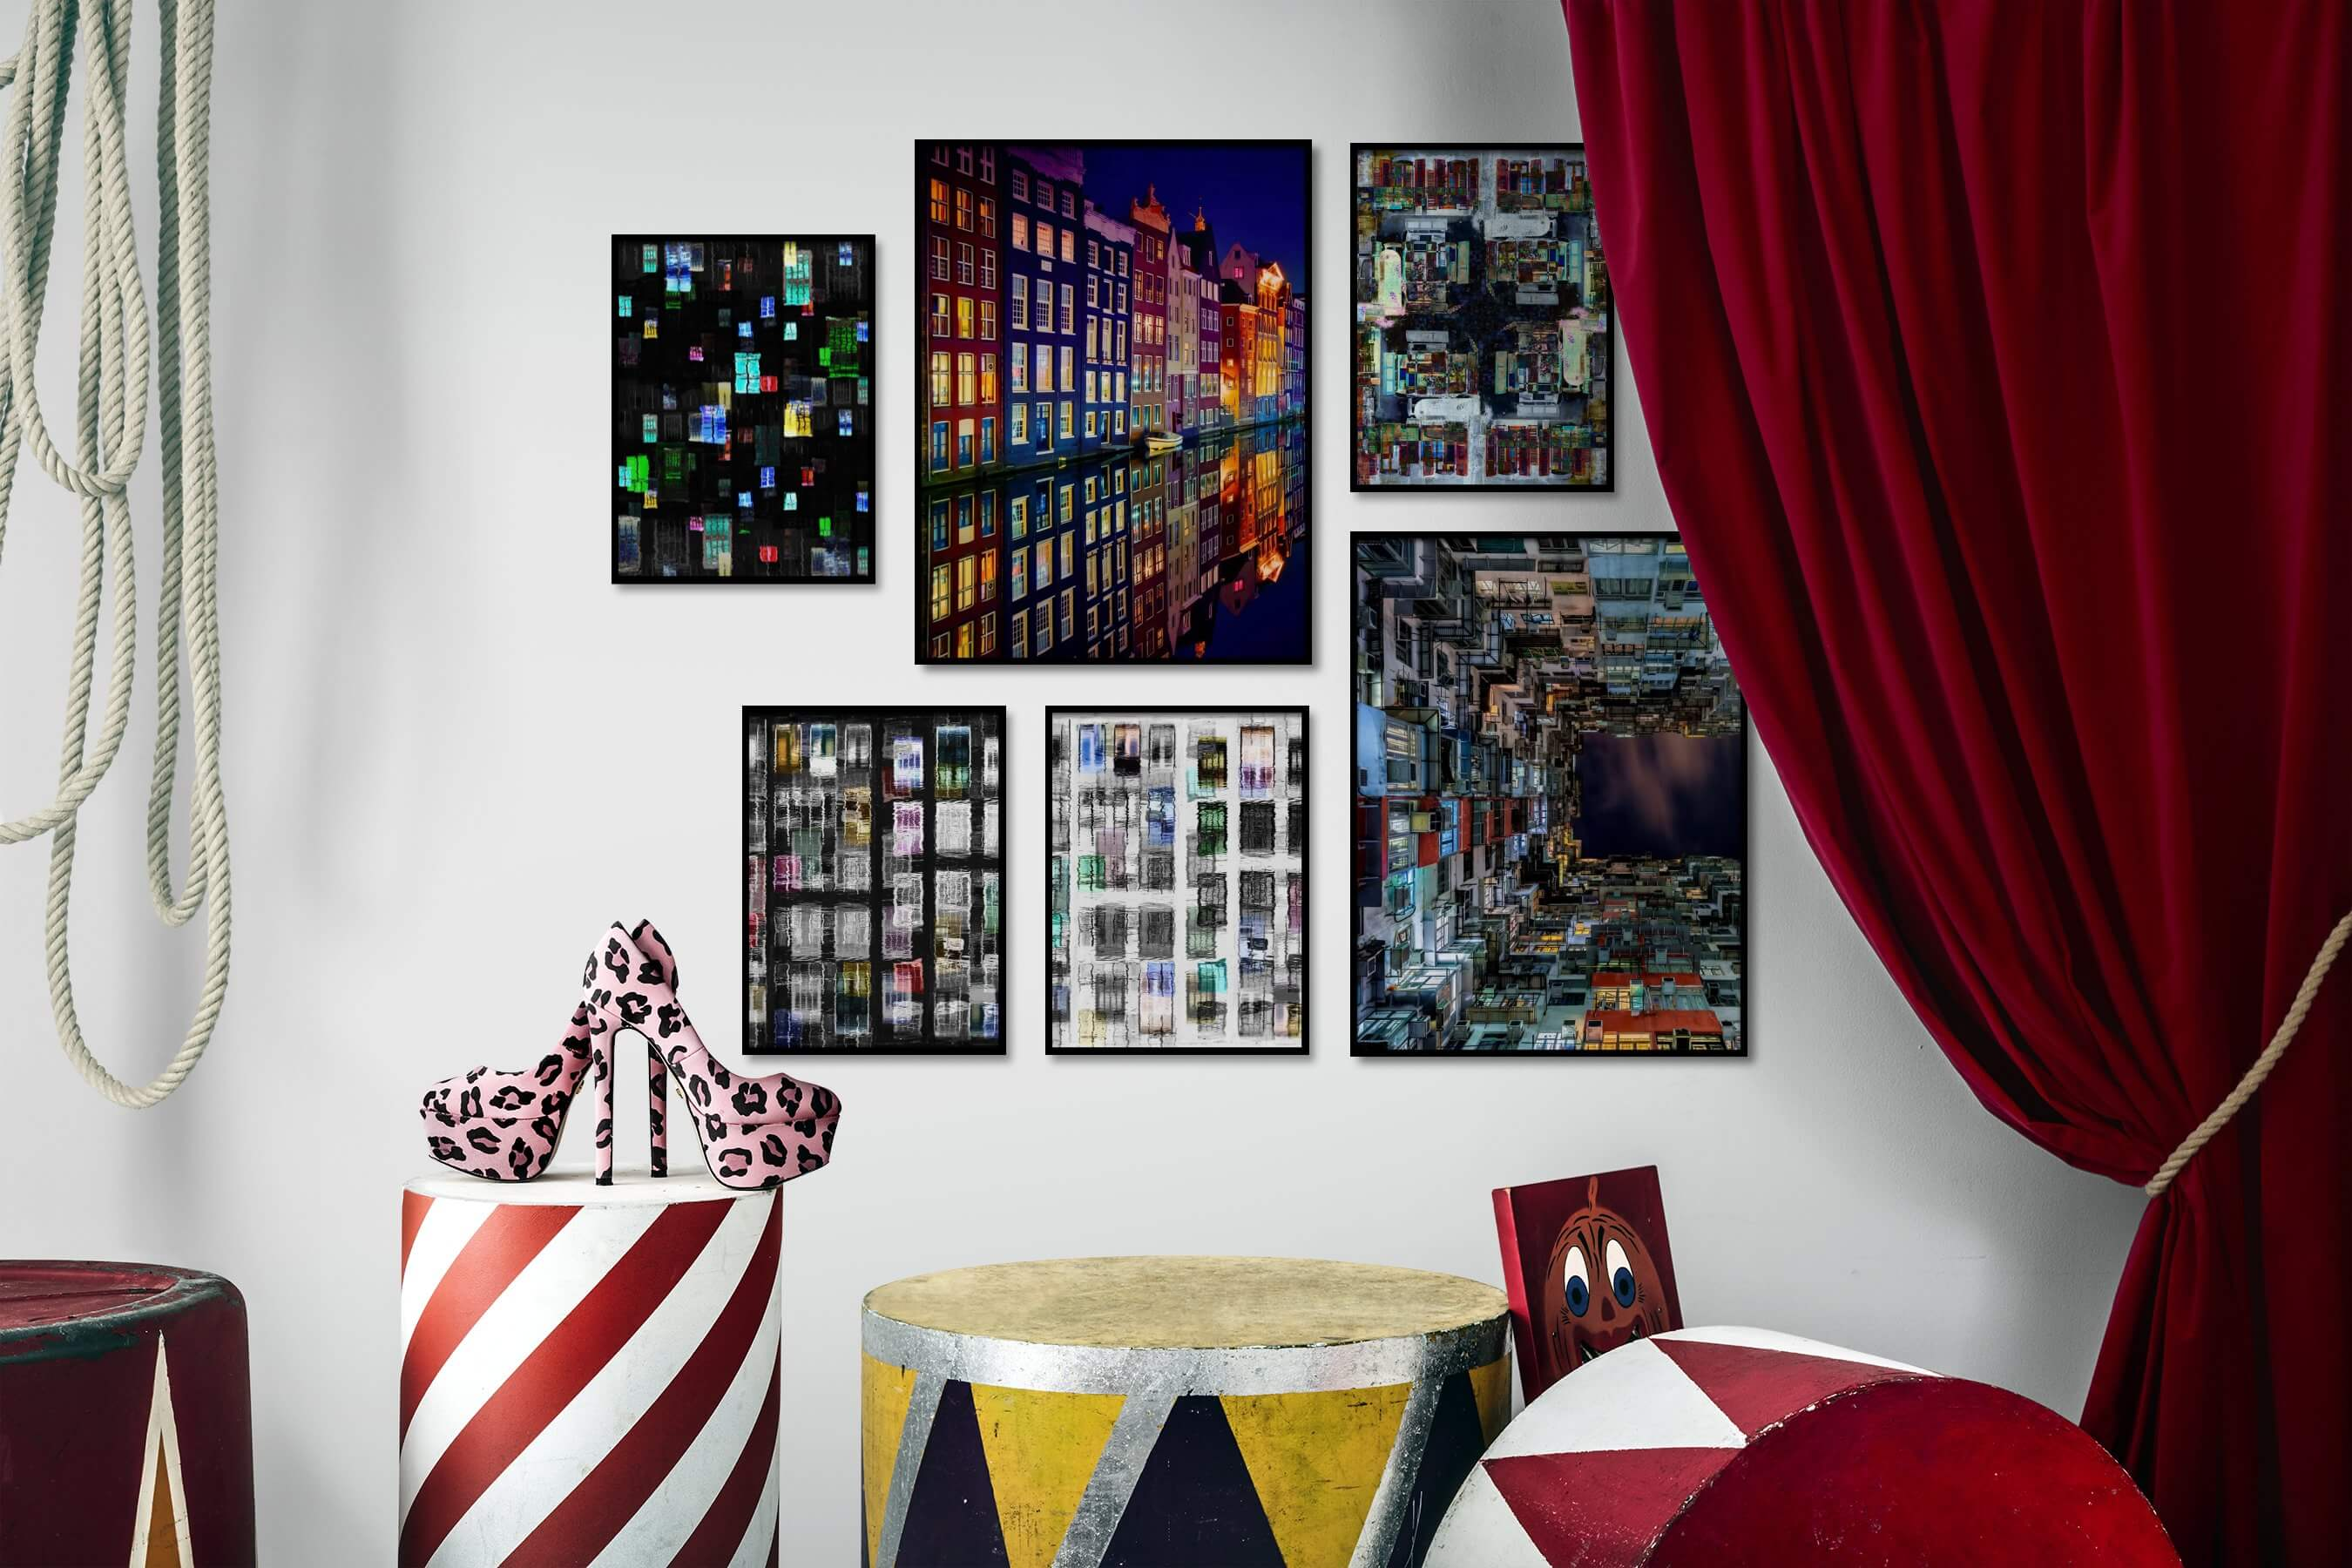 Gallery wall idea with six framed pictures arranged on a wall depicting For the Maximalist, Colorful, and City Life